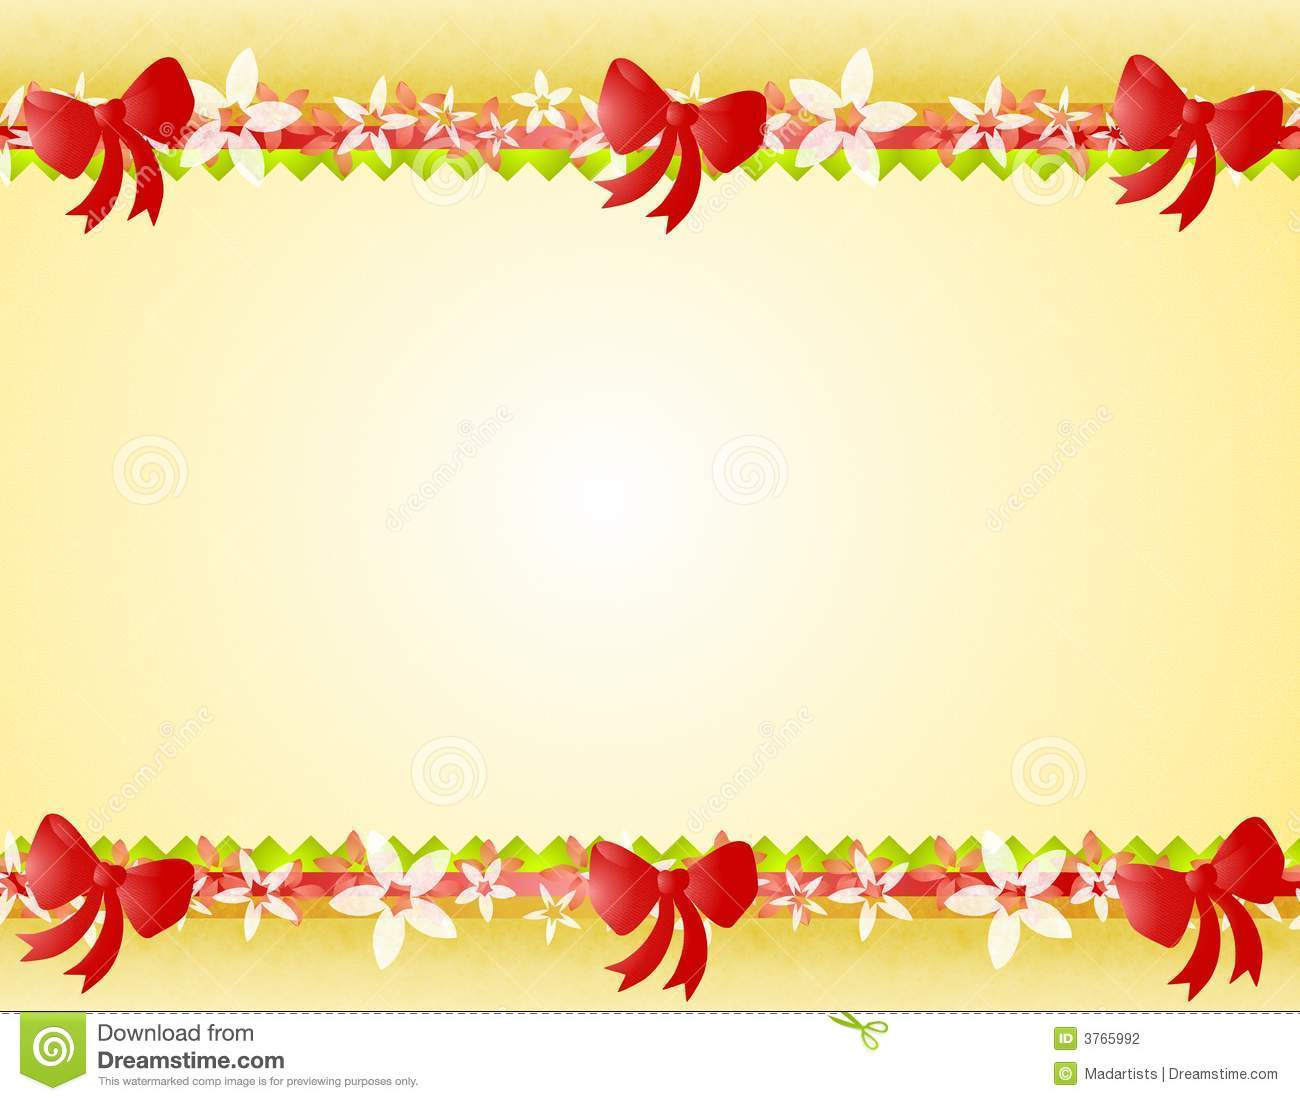 ... bottom border decorated with poinsettia designs, ribbon, and red bows